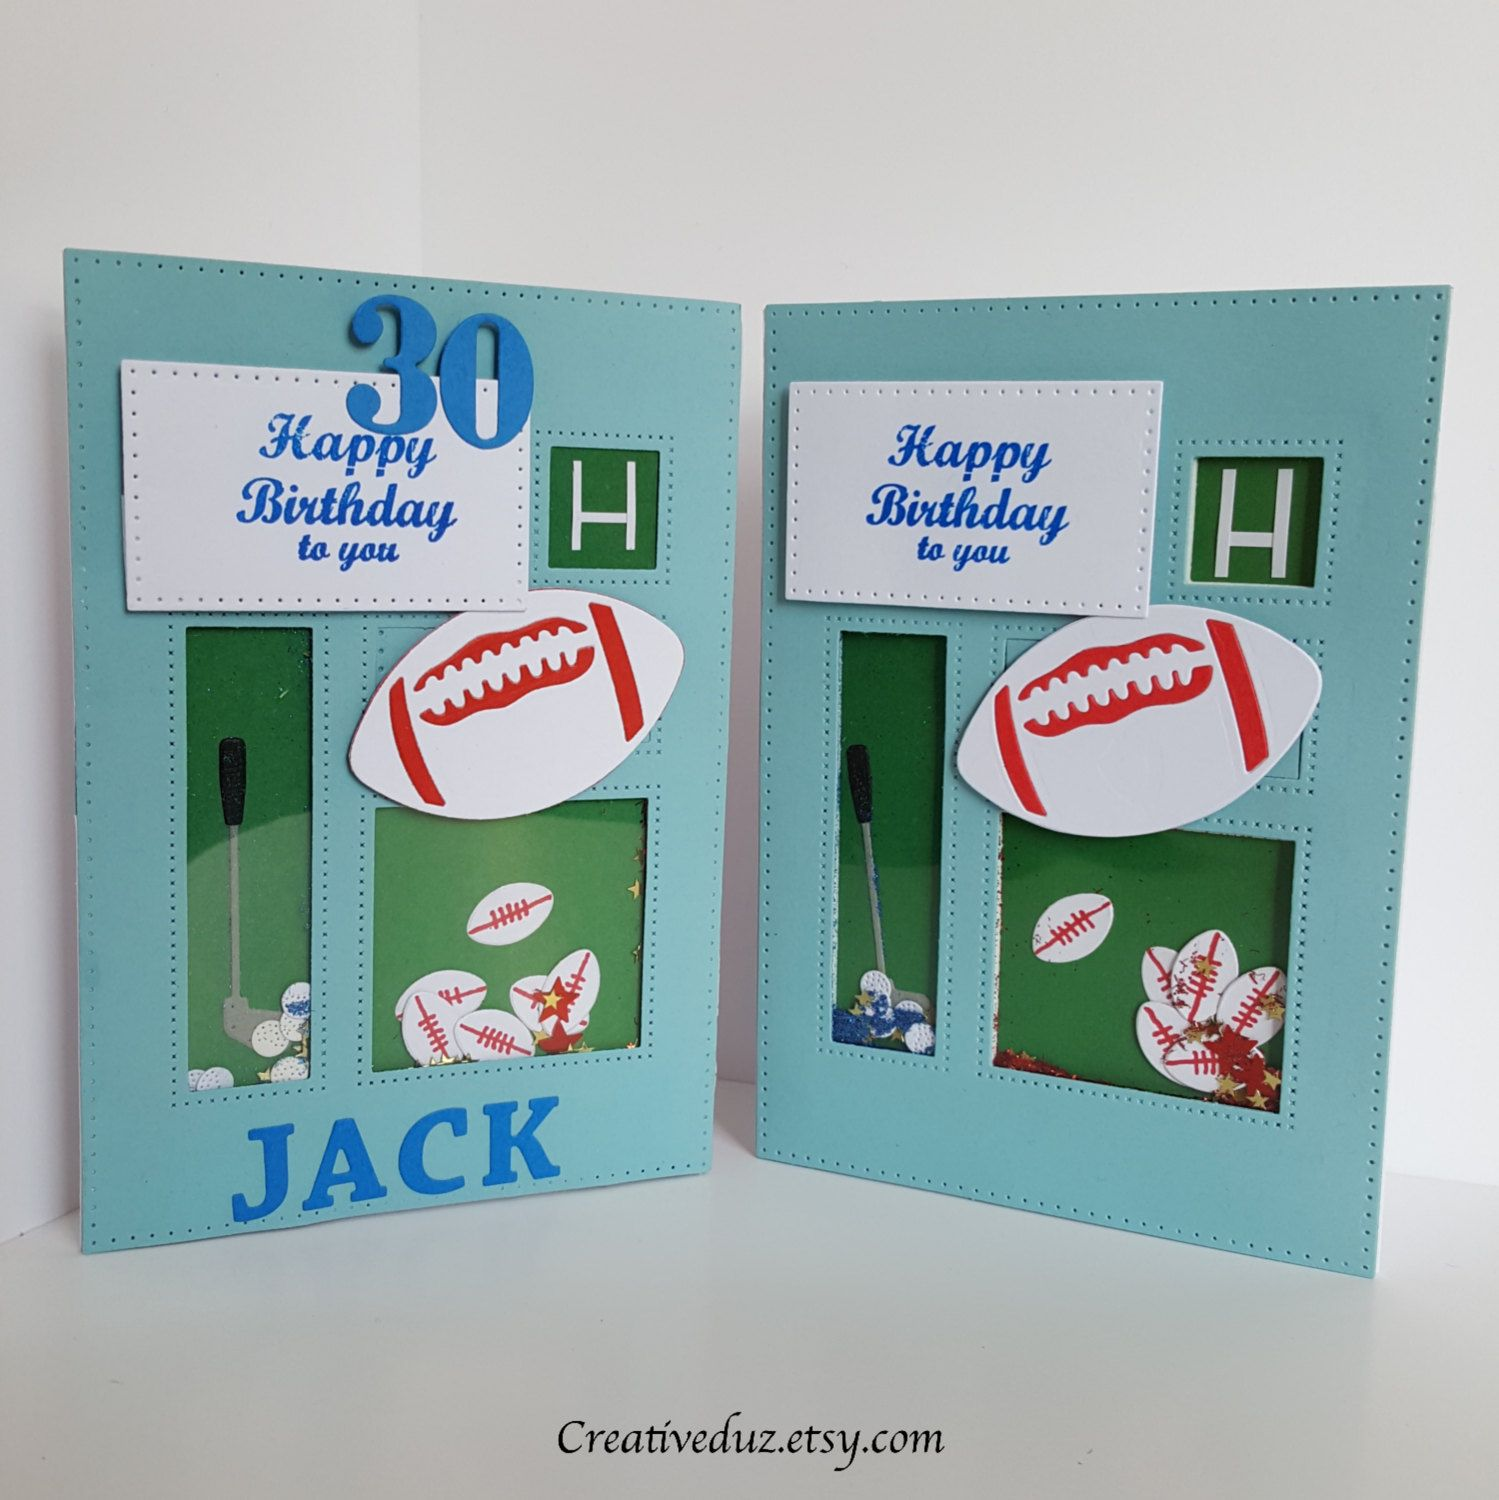 Personalised Rugby And Golf Shaker Birthday Card Male Cards For Men Customised Age 60 30 21 18 By CreativeDuz